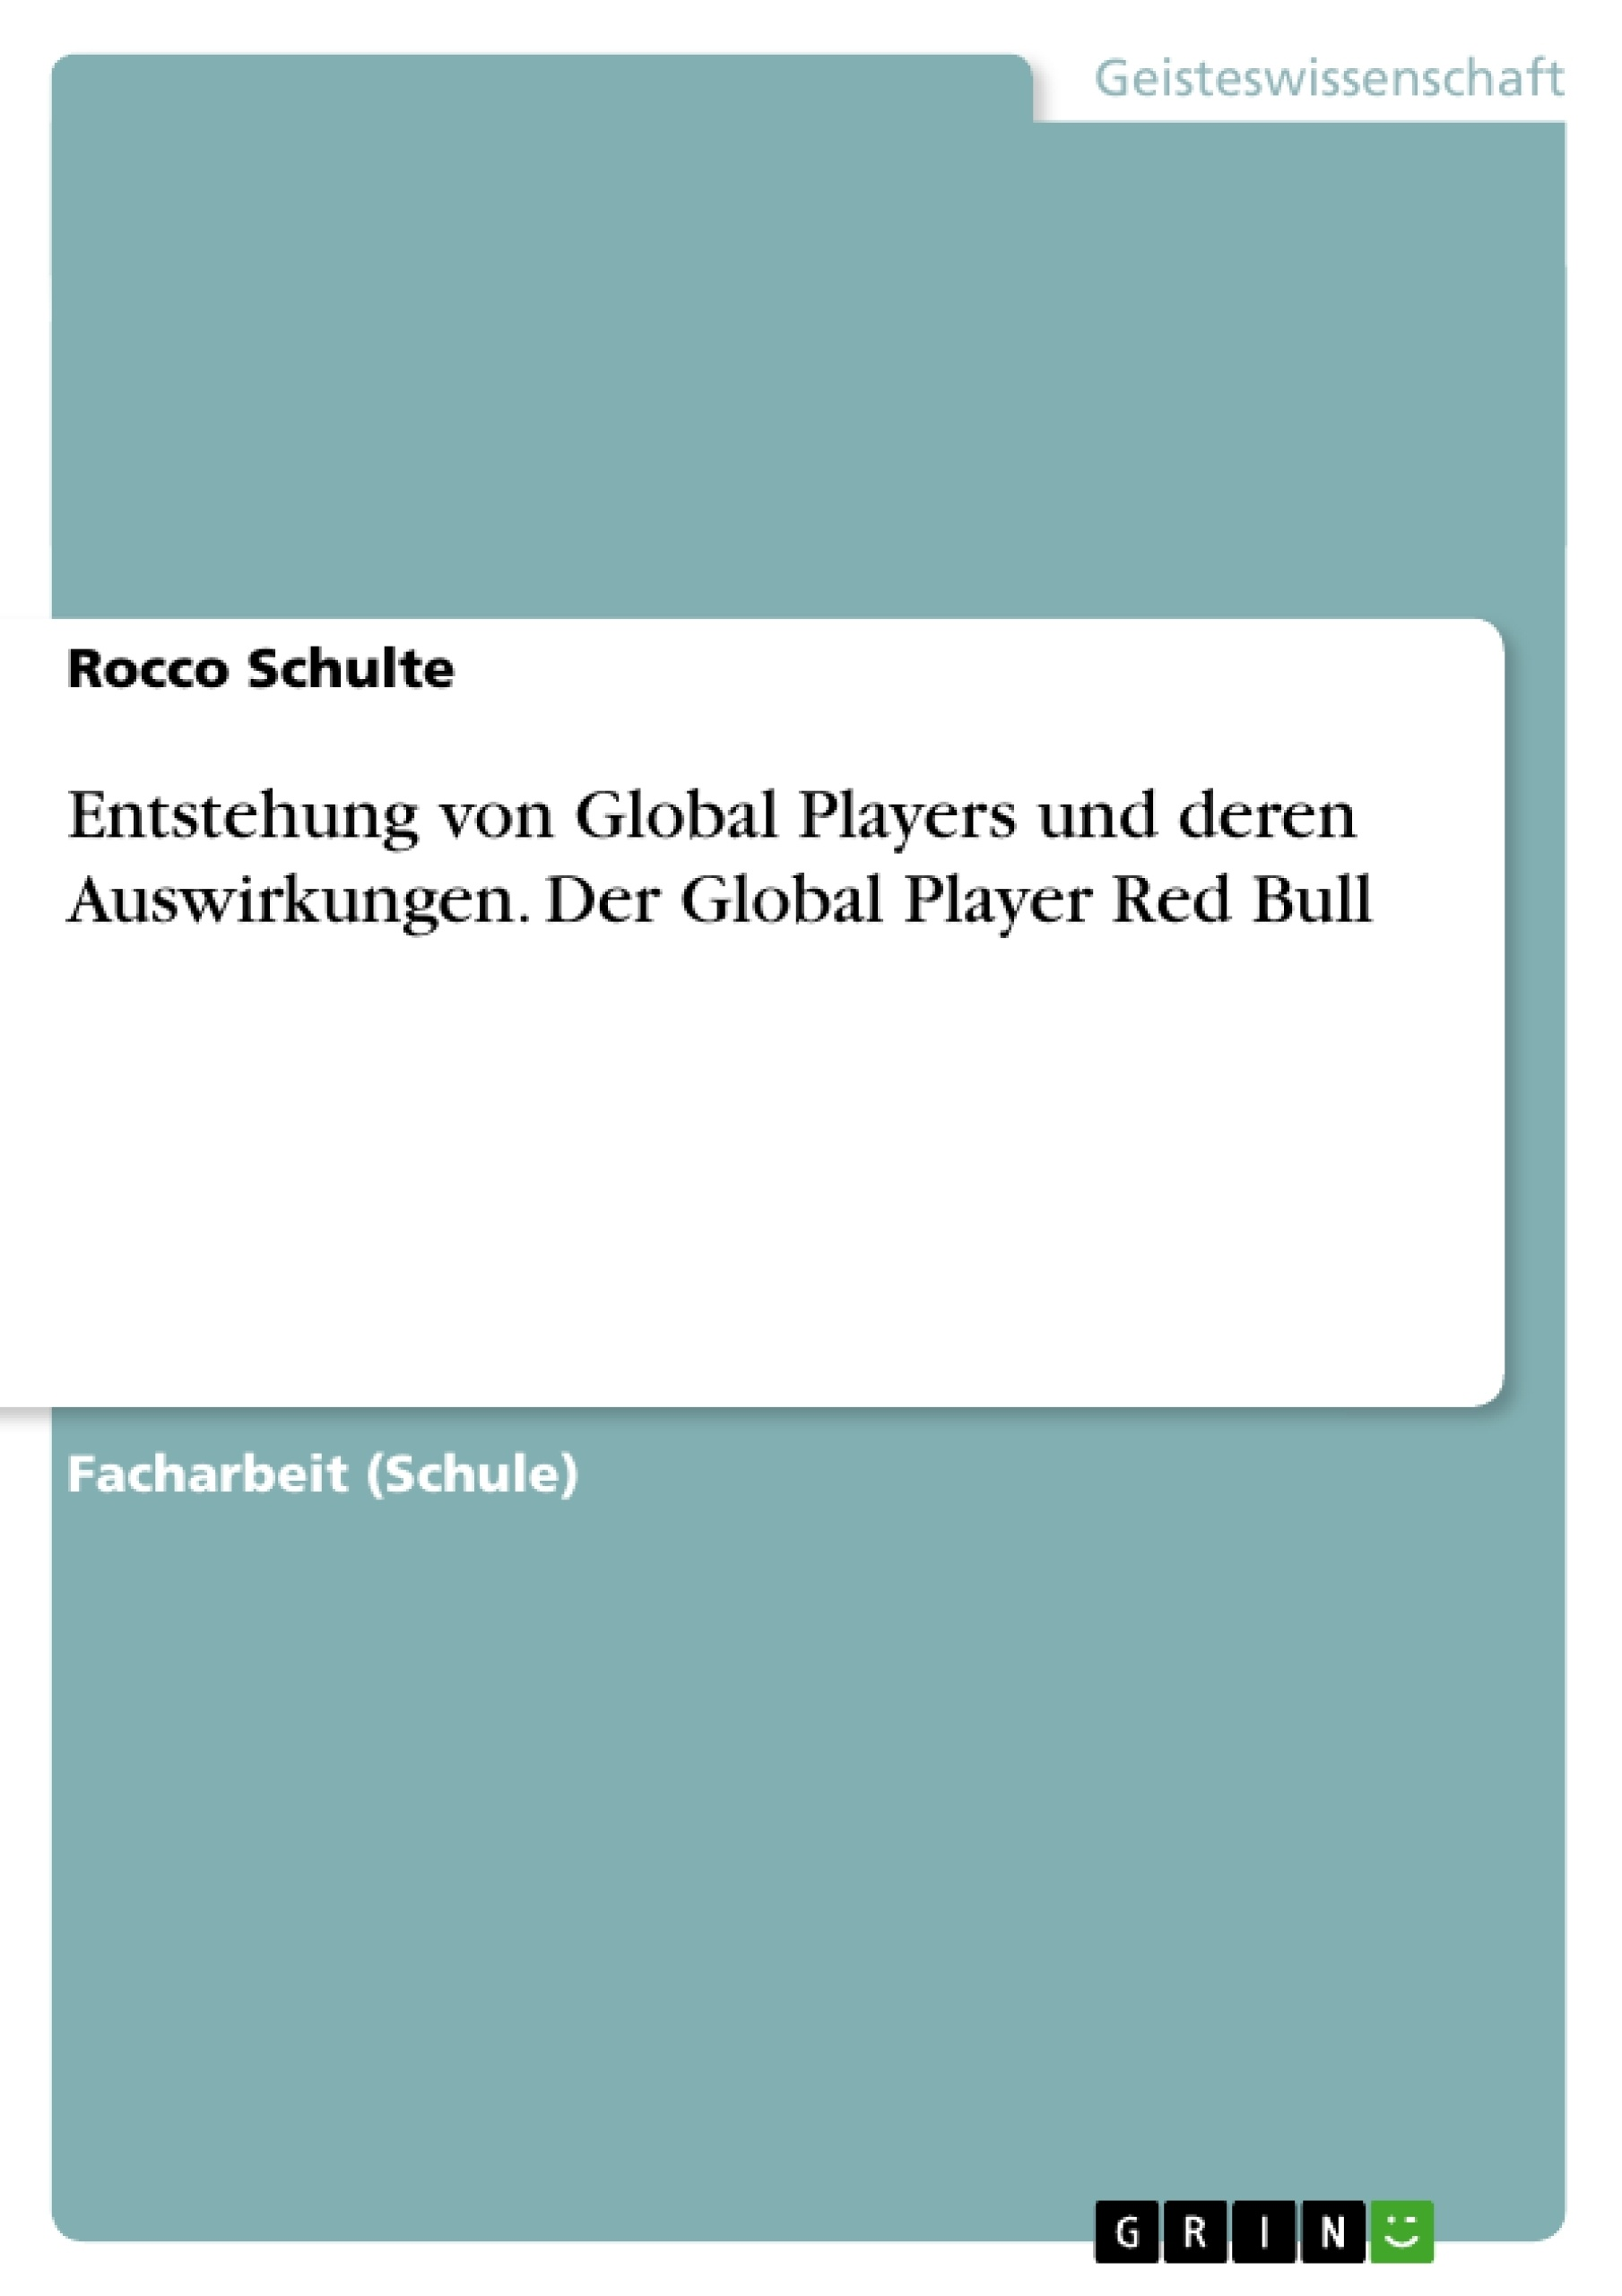 Titel: Entstehung von Global Players und deren Auswirkungen. Der Global Player Red Bull